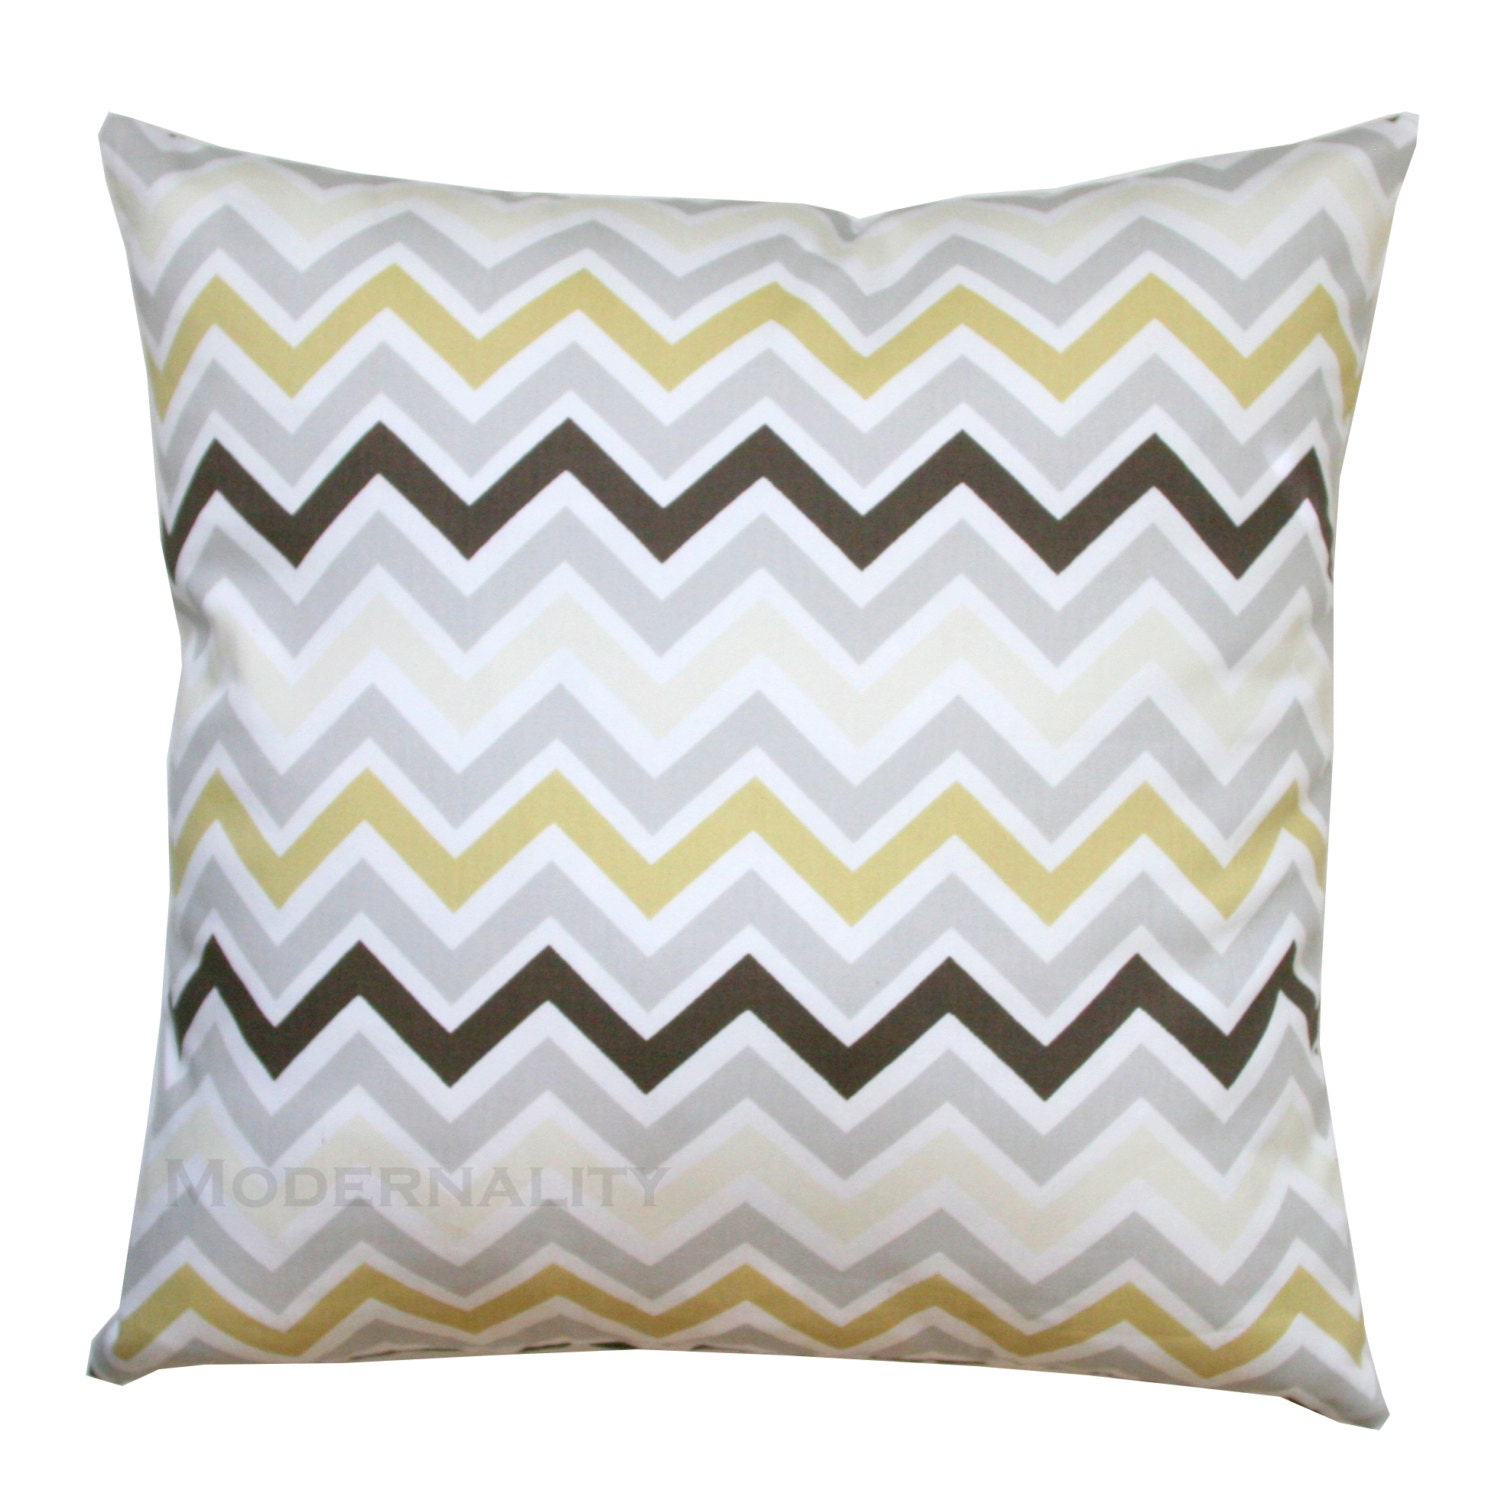 Decorative Throw Pillows Clearance : CLEARANCE Decorative Chevron Pillow by ModernalityHomeDecor